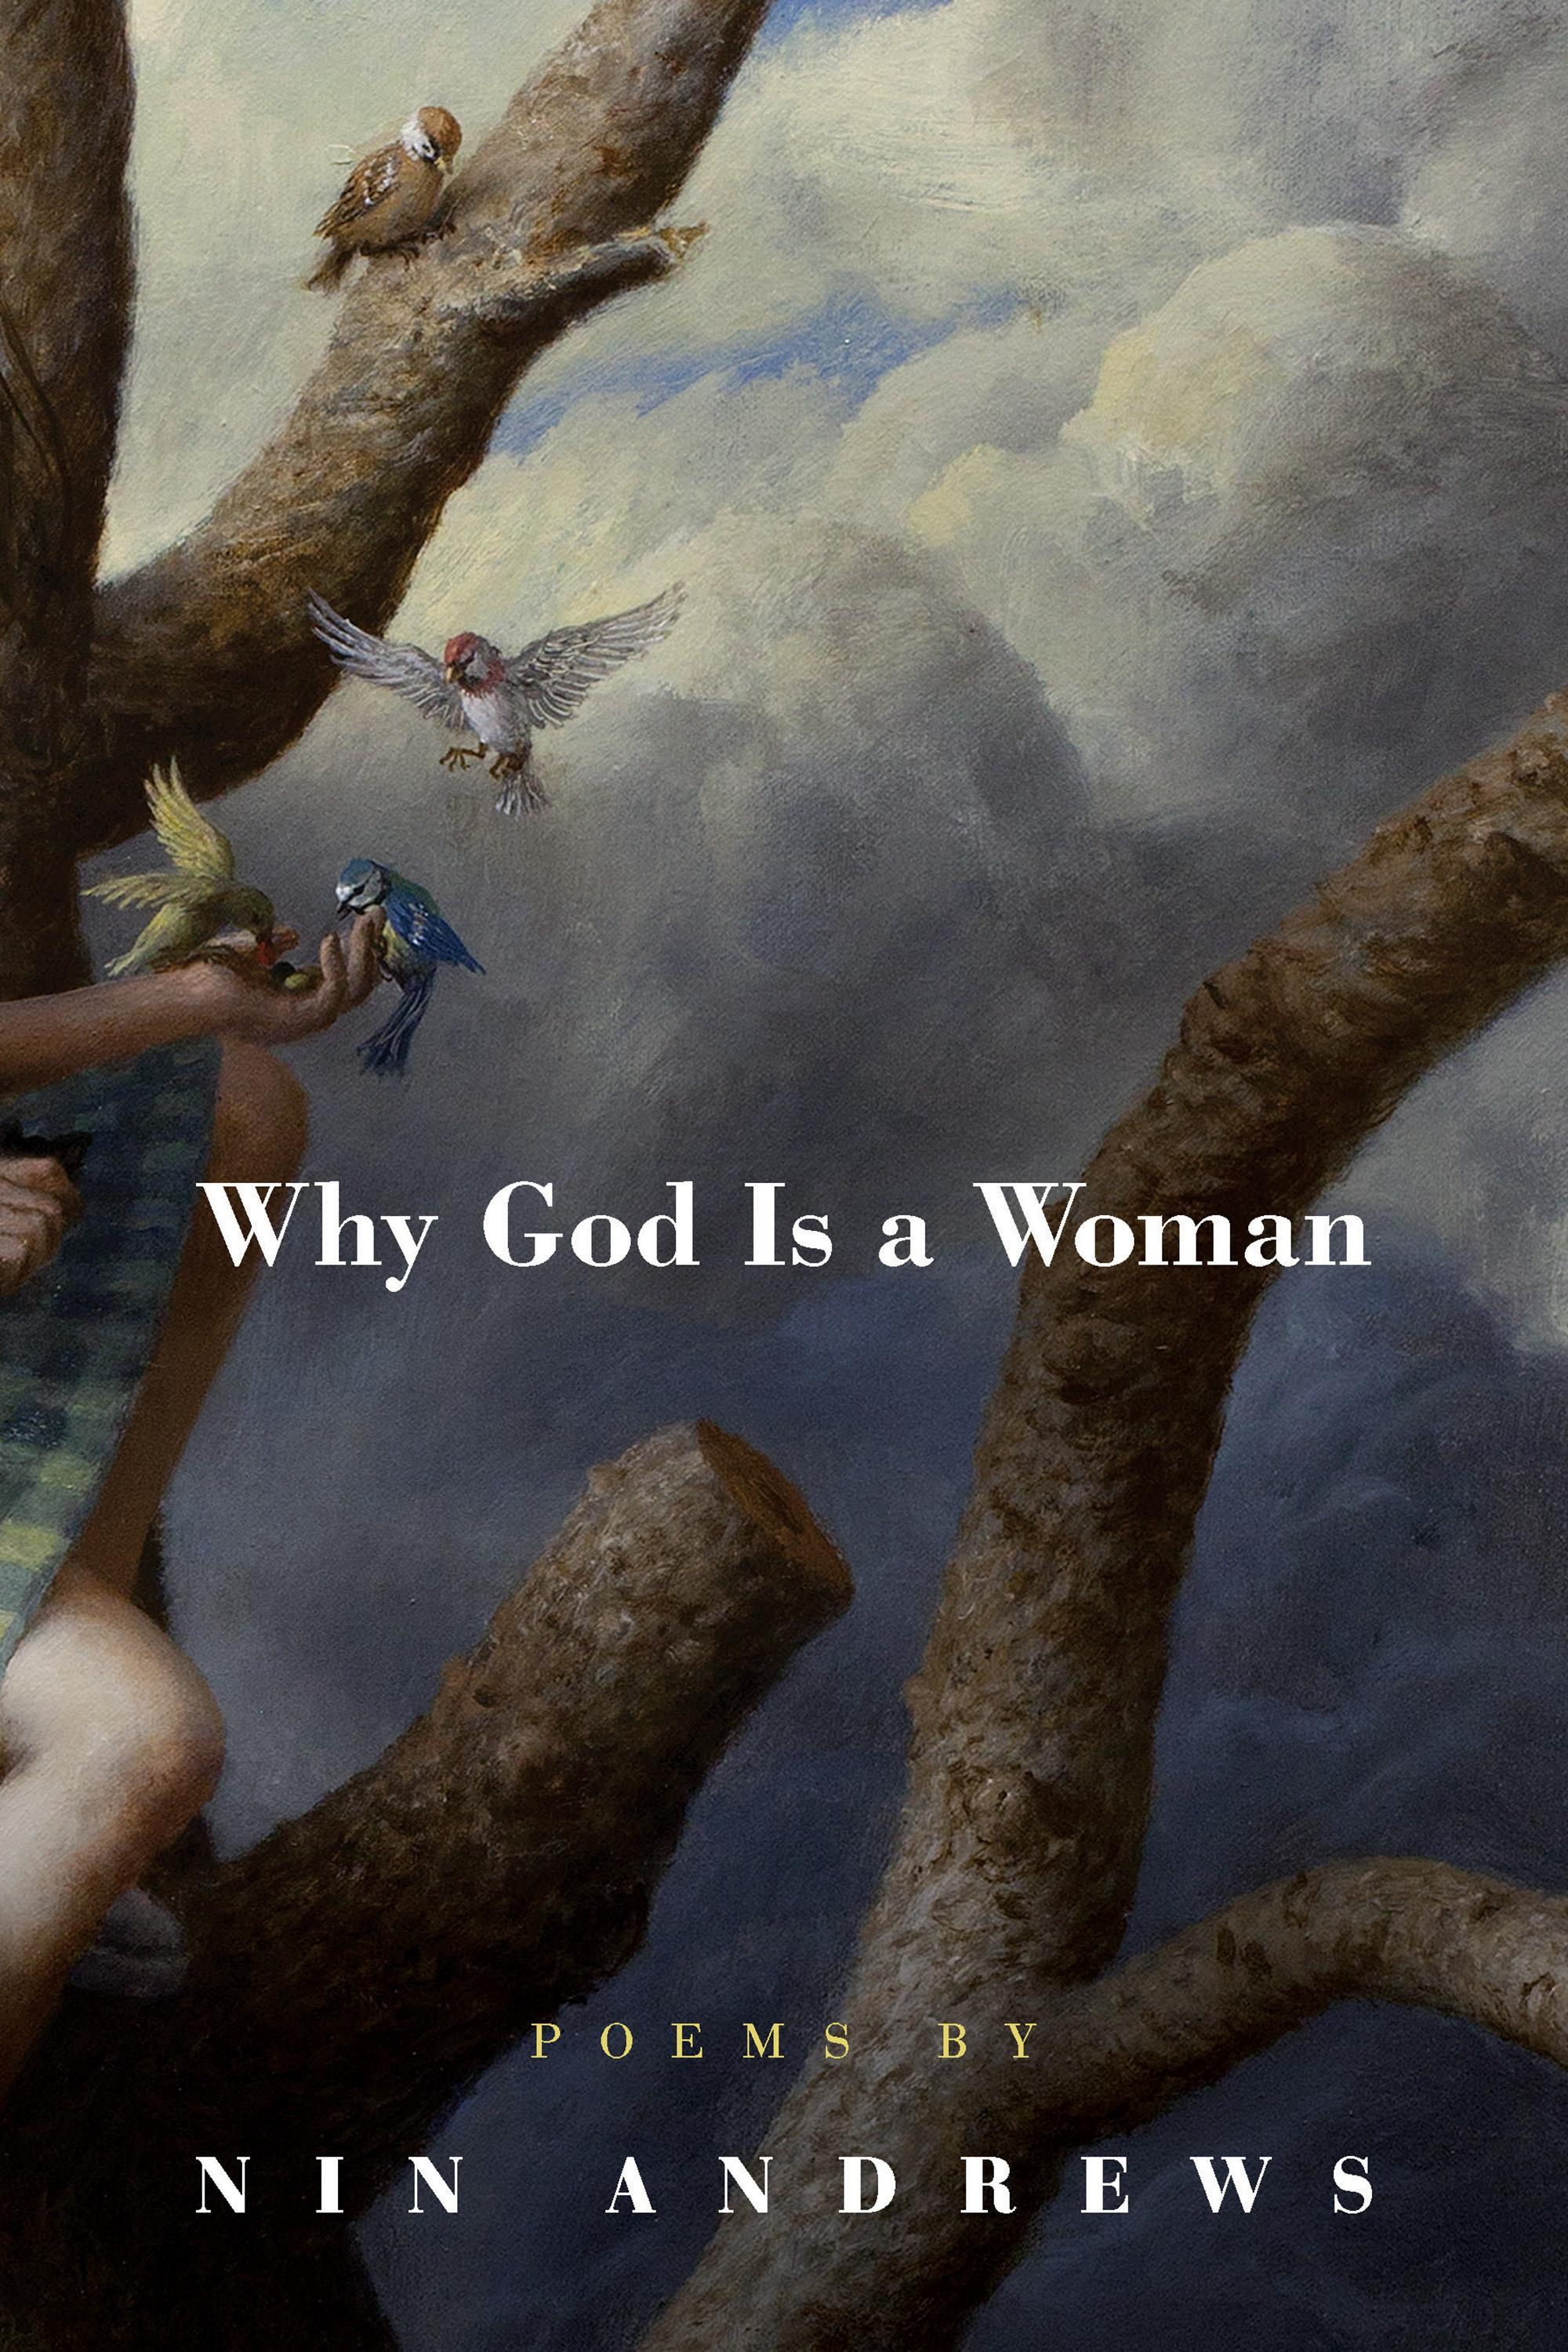 why gods a woman These reasons may explain why a man abuses his wife, but they do not give him permission to do so a man may offer many here are some of the reasons why some men hurt women: violent or abusive relationships often happen when one person has.